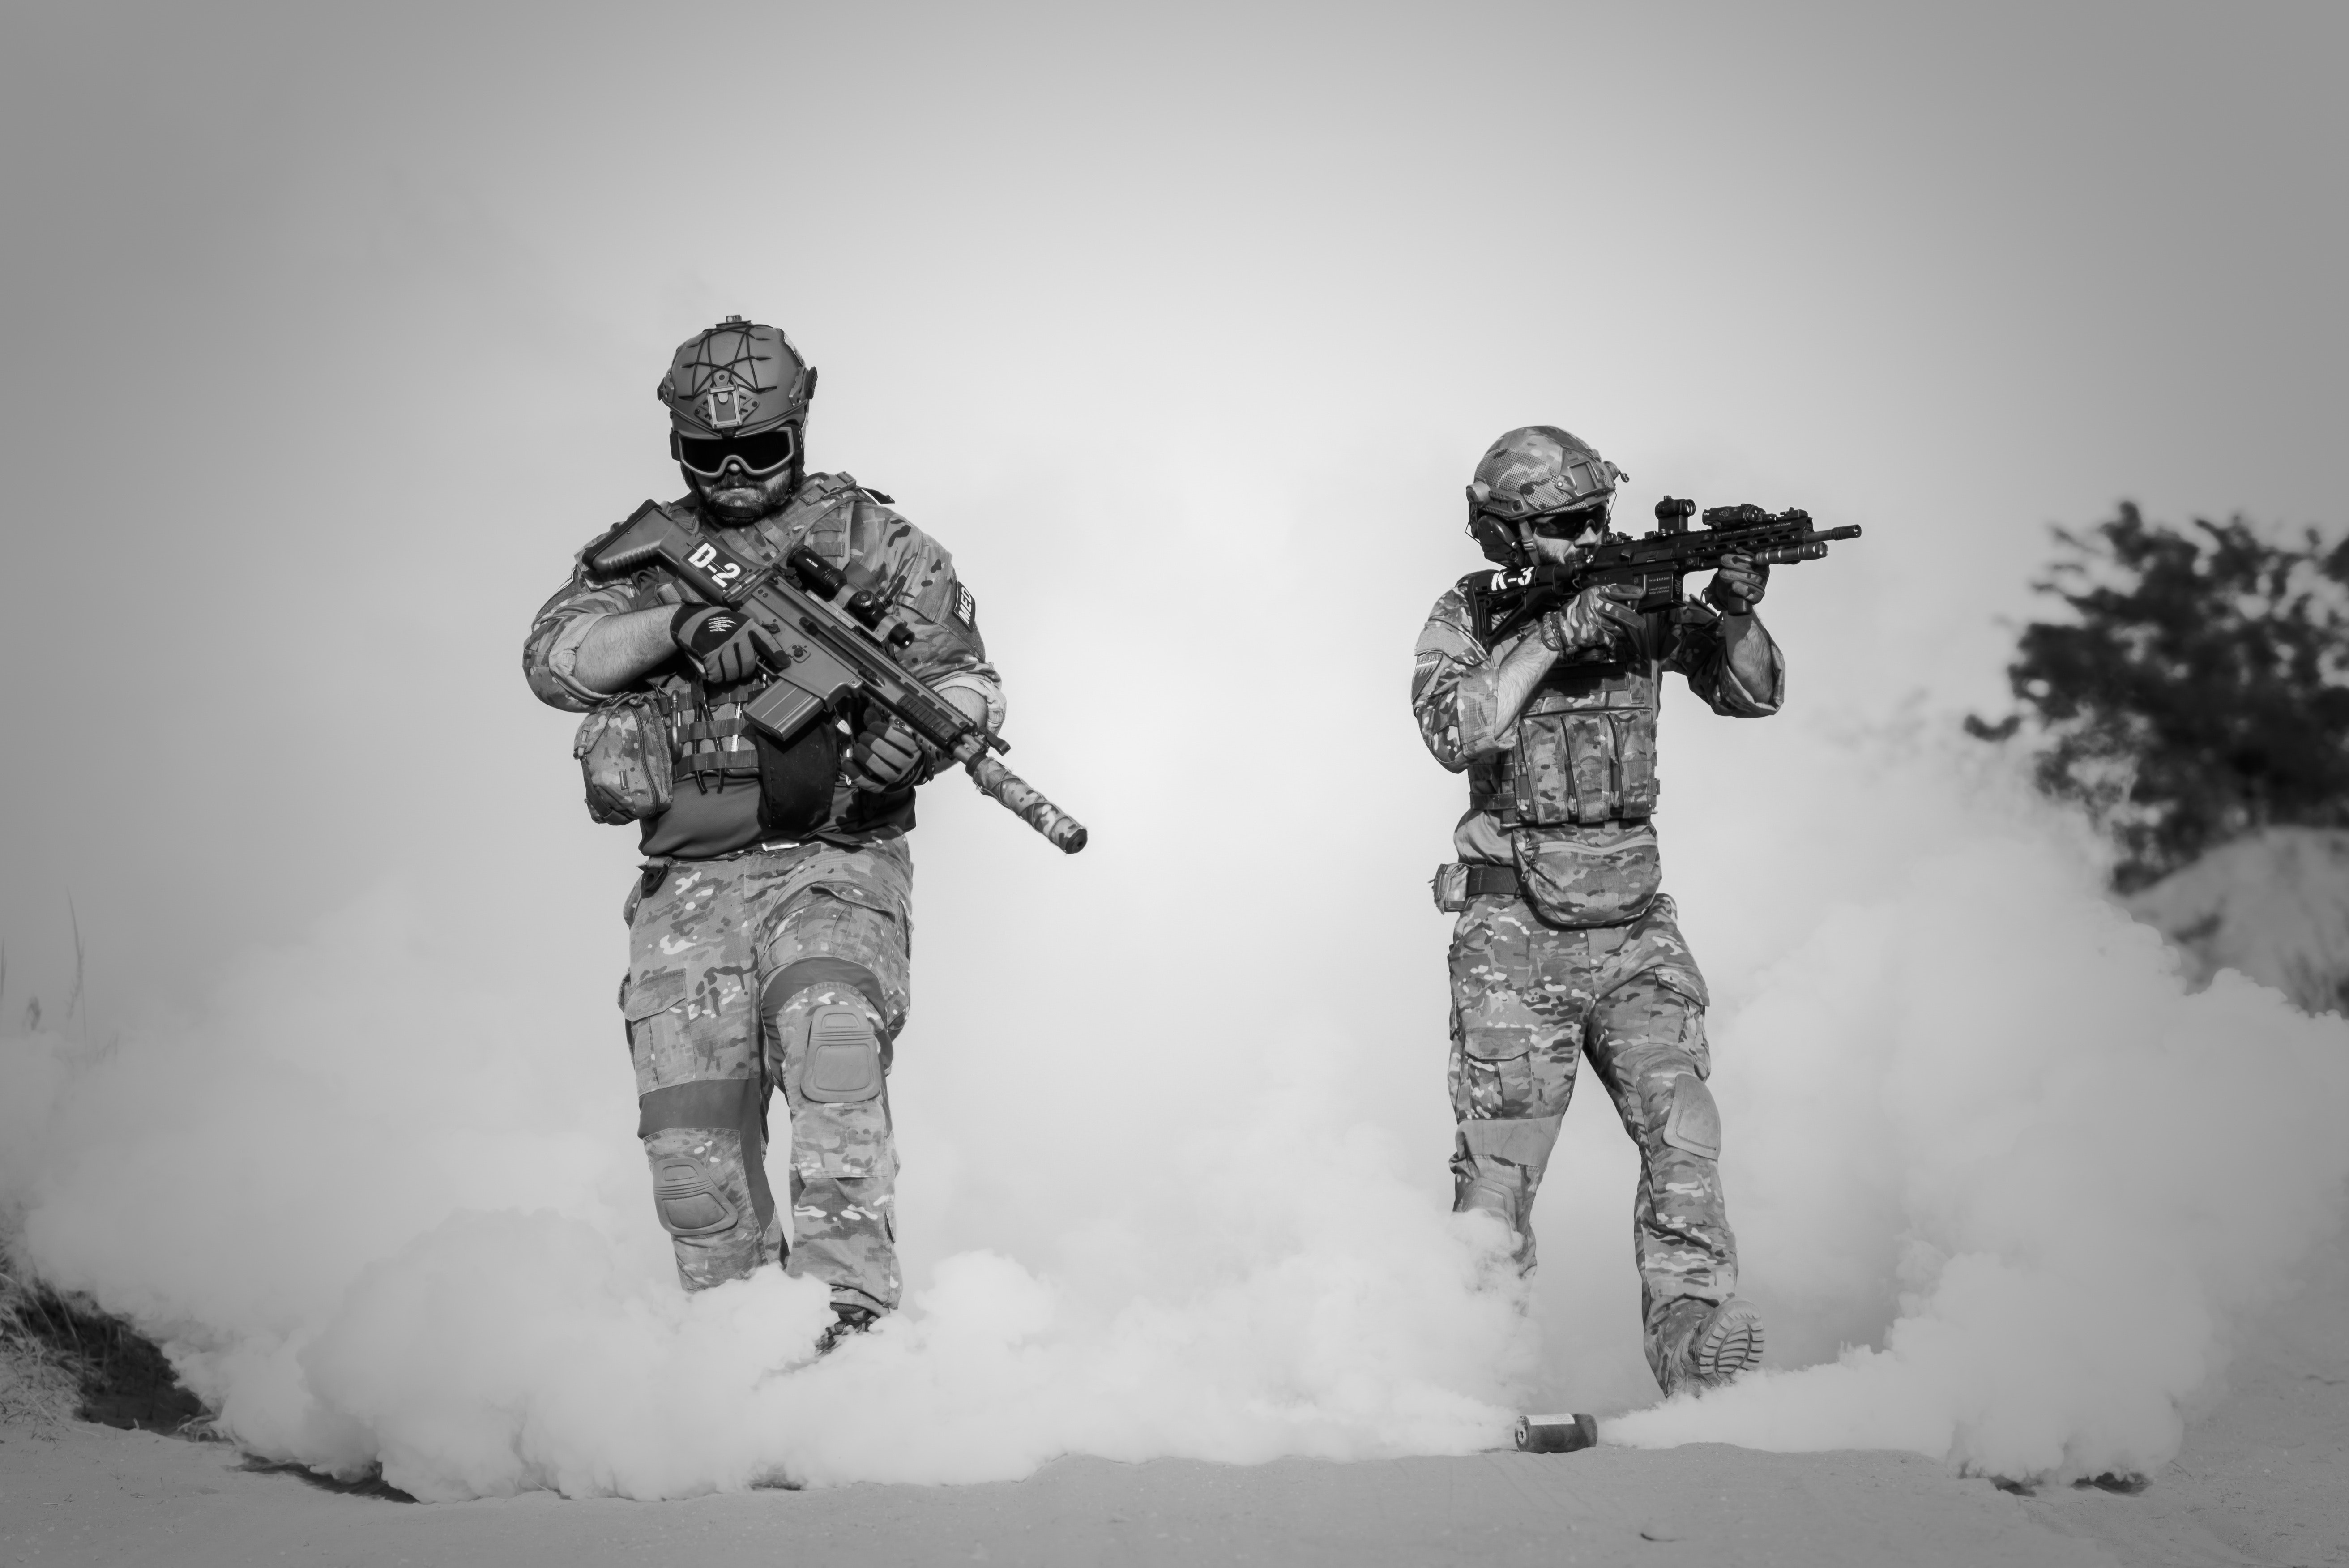 Two men in military clothing with guns photo